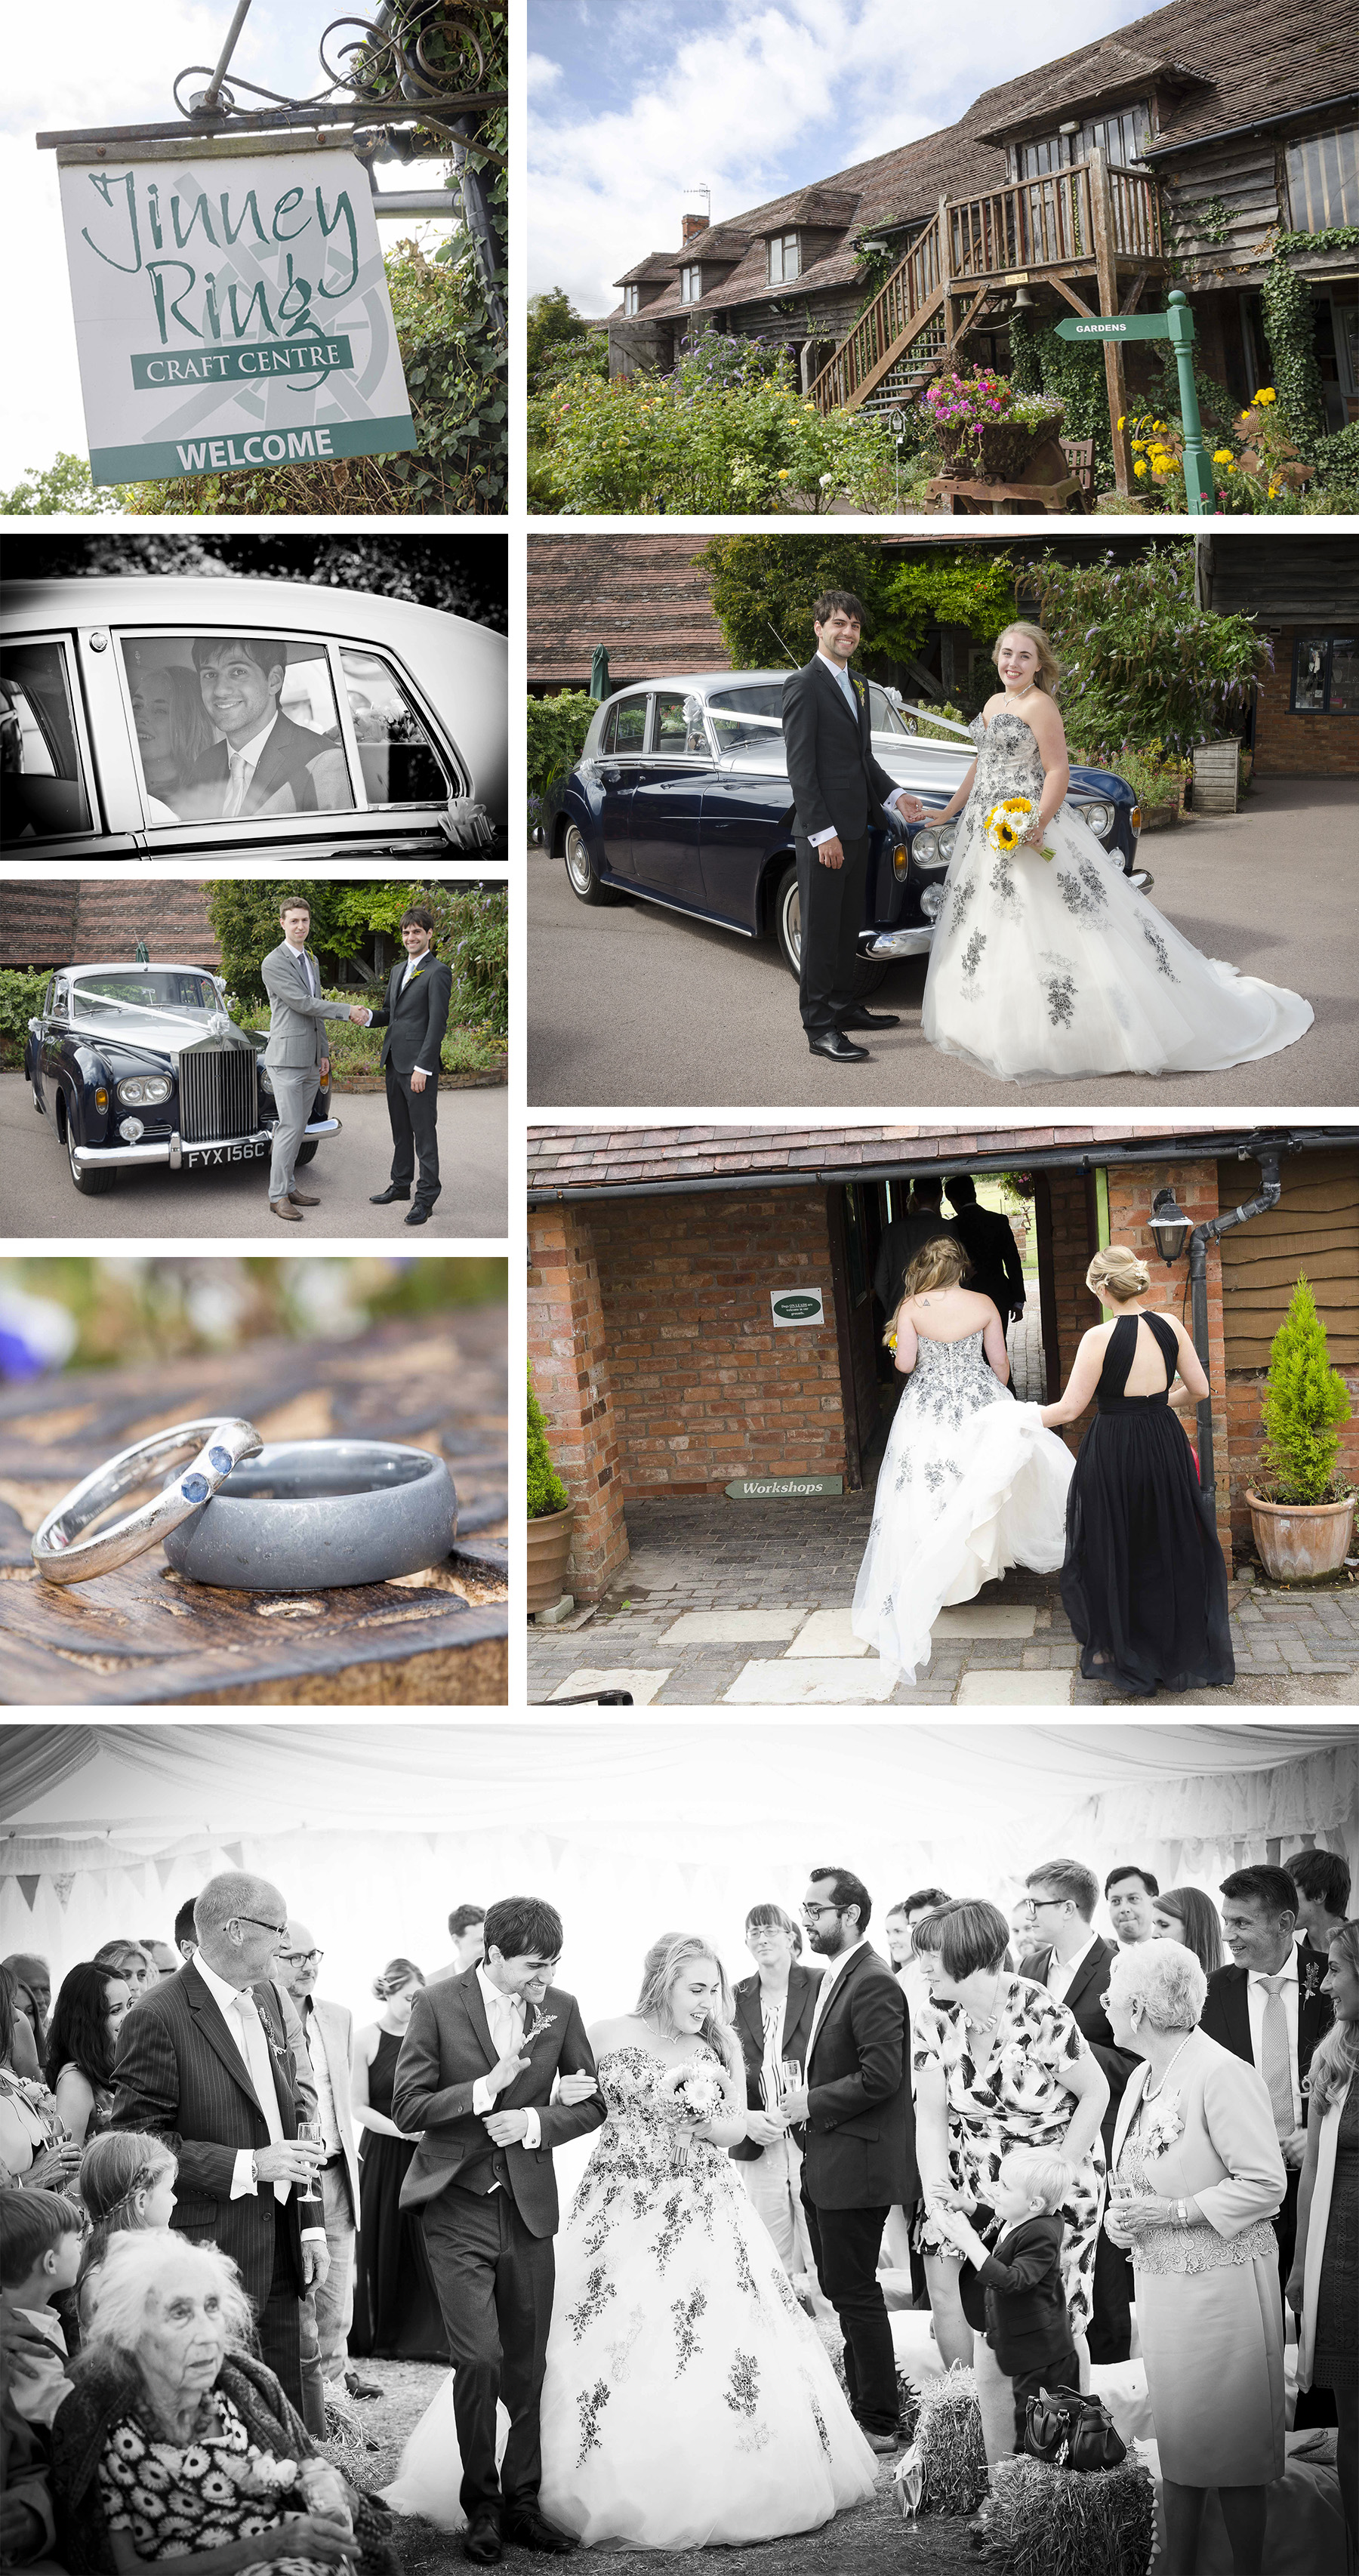 Wedding Photography at the Jinney Ring Centre